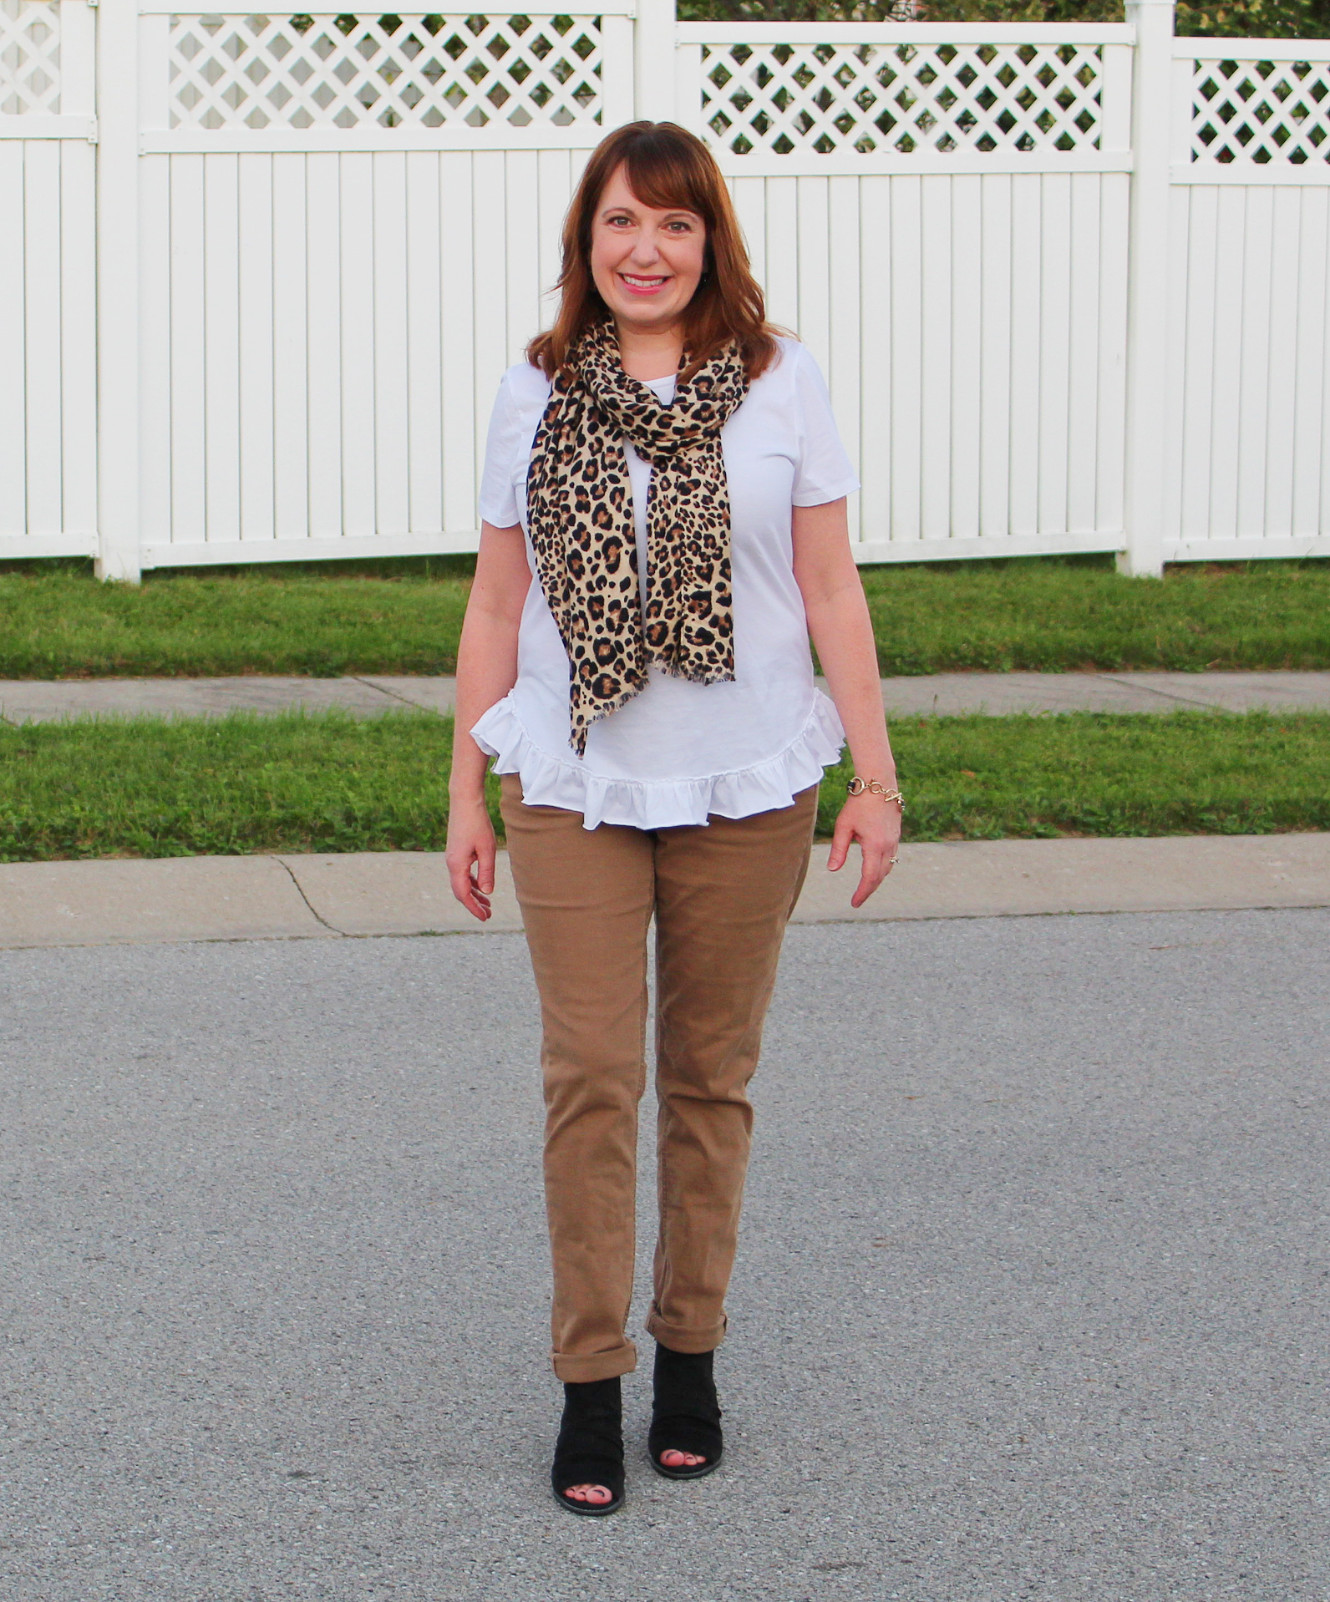 Tee, Scarf, Brown Pants, And Black Sling Back Shoes